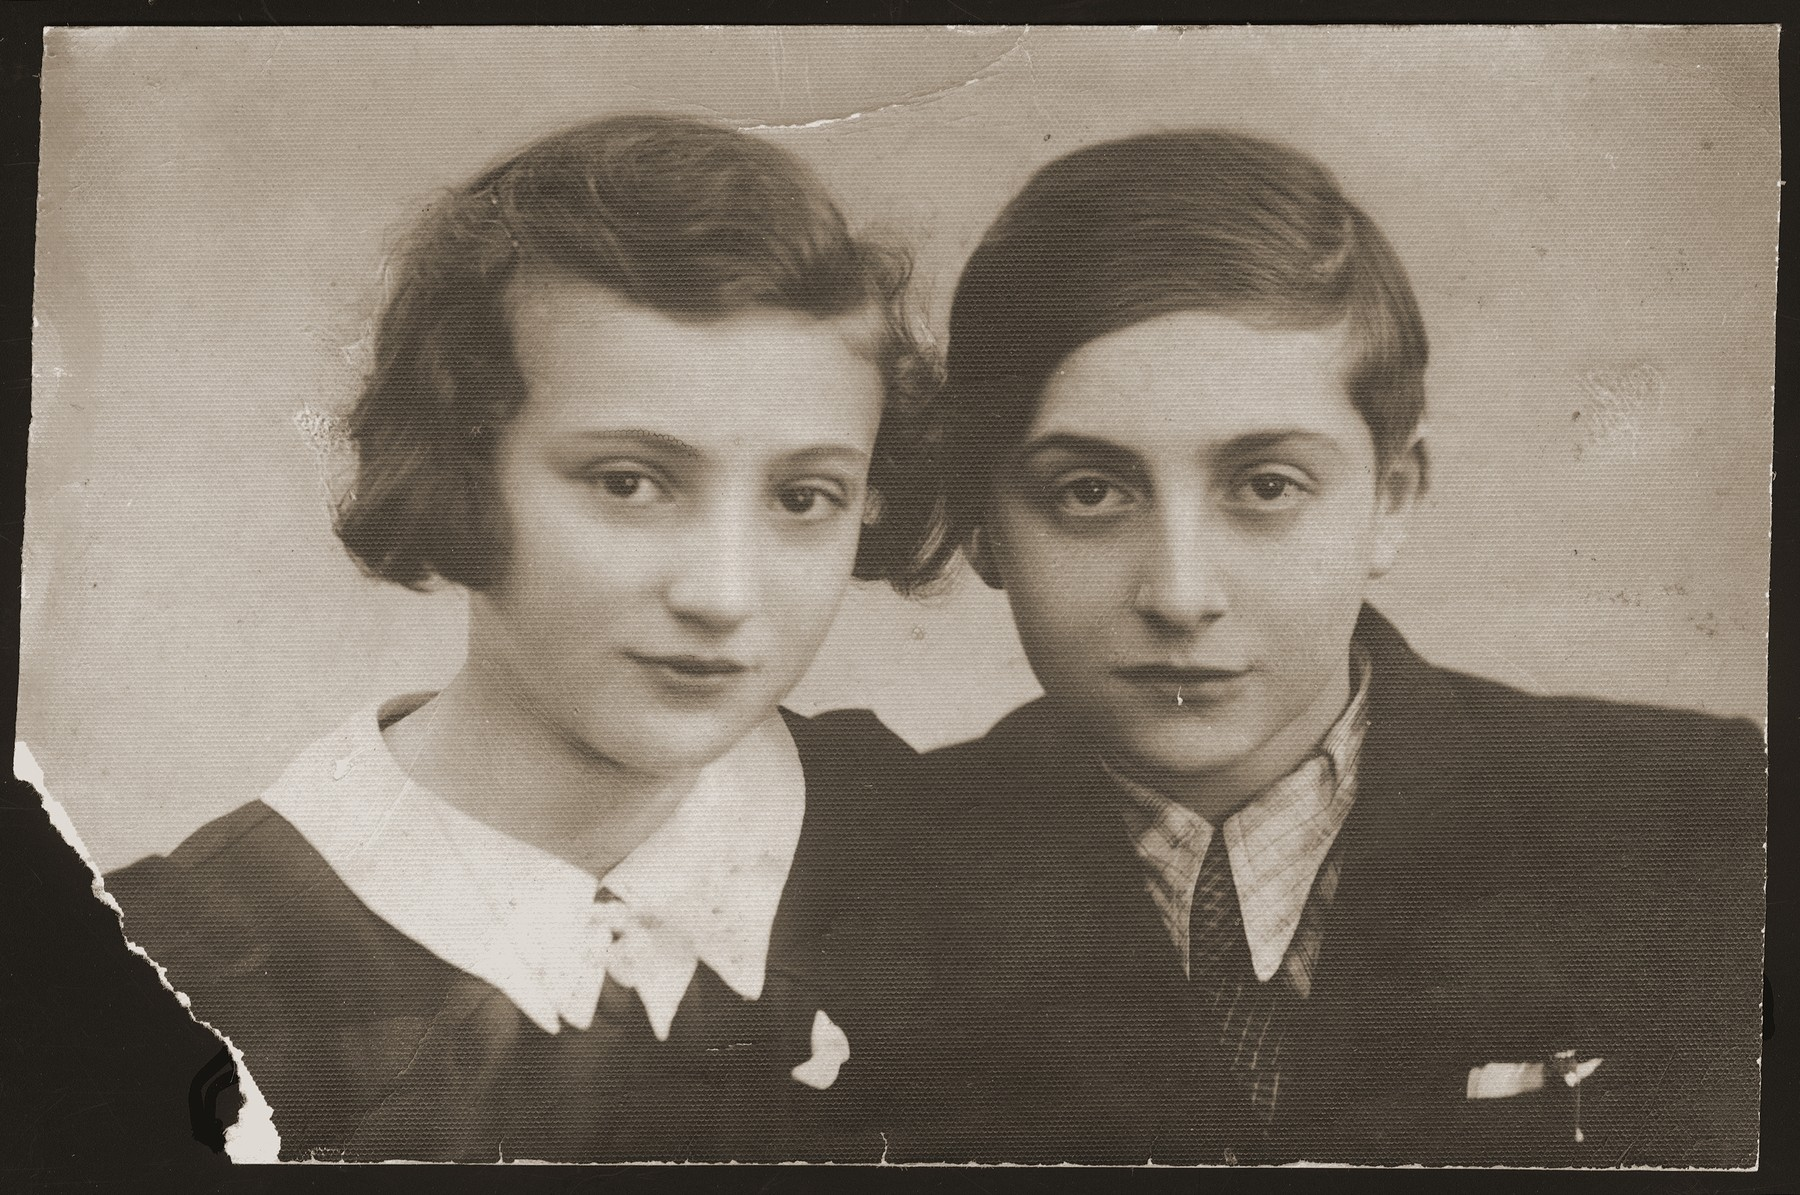 Portrait of two Jewish siblings in the Srodula ghetto in Sosnowiec, Poland.  Pictured are Jadzia and Szlamek Moncznik.  This photograph was sent to their brother, Berl Moncznik, then imprisoned in a labor camp.  In August 1942 both children were deported to their death in Auschwitz.